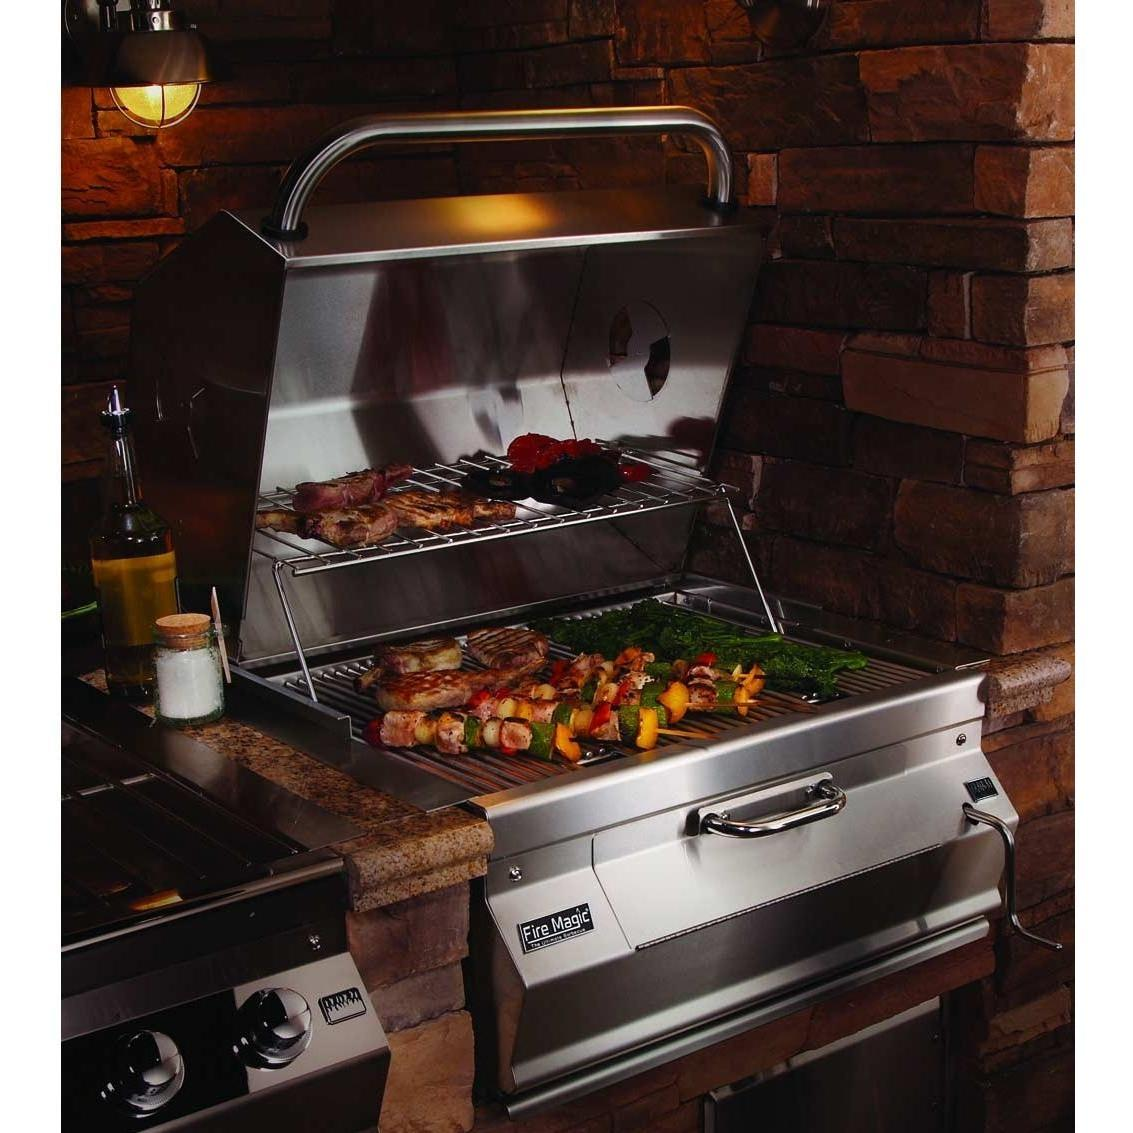 Outdoor Kitchen Design Store: Fire Magic Legacy Meat Smoker Charcoal Grill 30-Inch